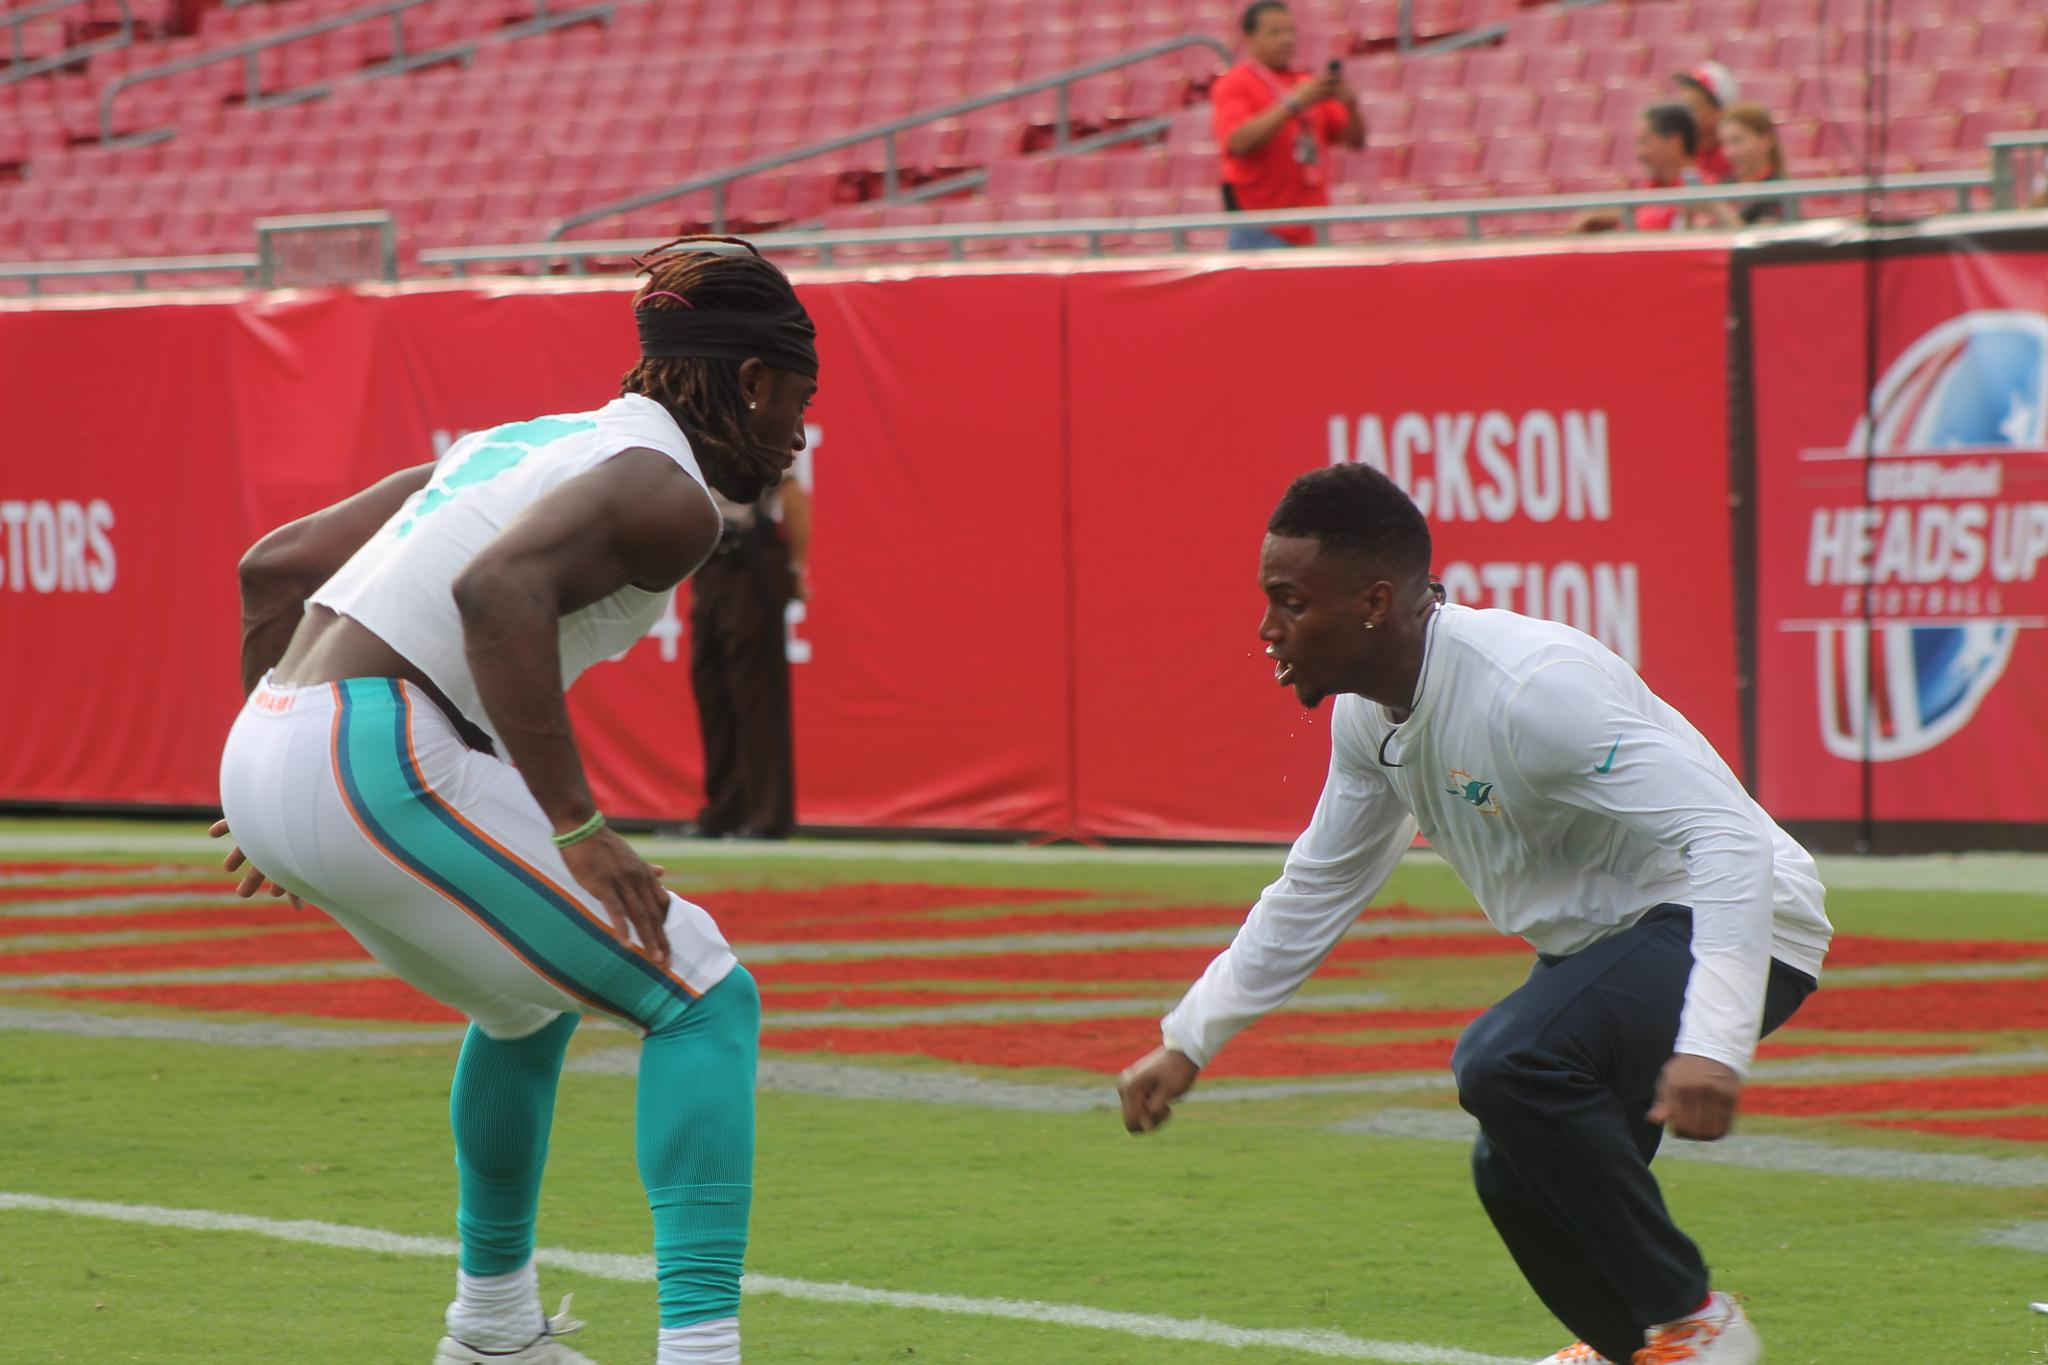 Miami Dolphins football practice by Kathy